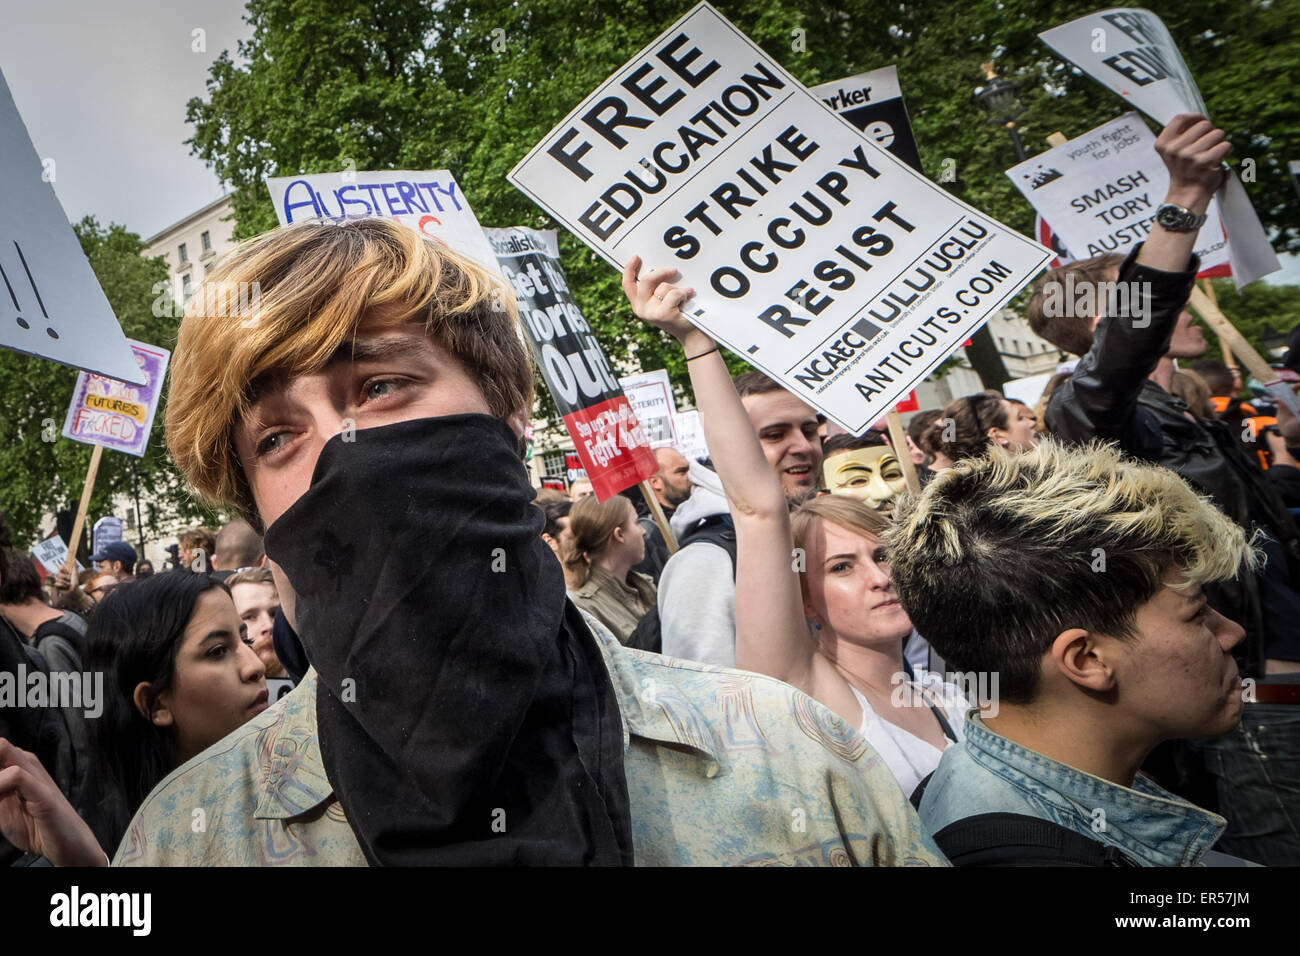 London, UK. 27th May, 2015. Anti-Tory Protests Following the State Opening of Parliament Credit:  Guy Corbishley/Alamy - Stock Image